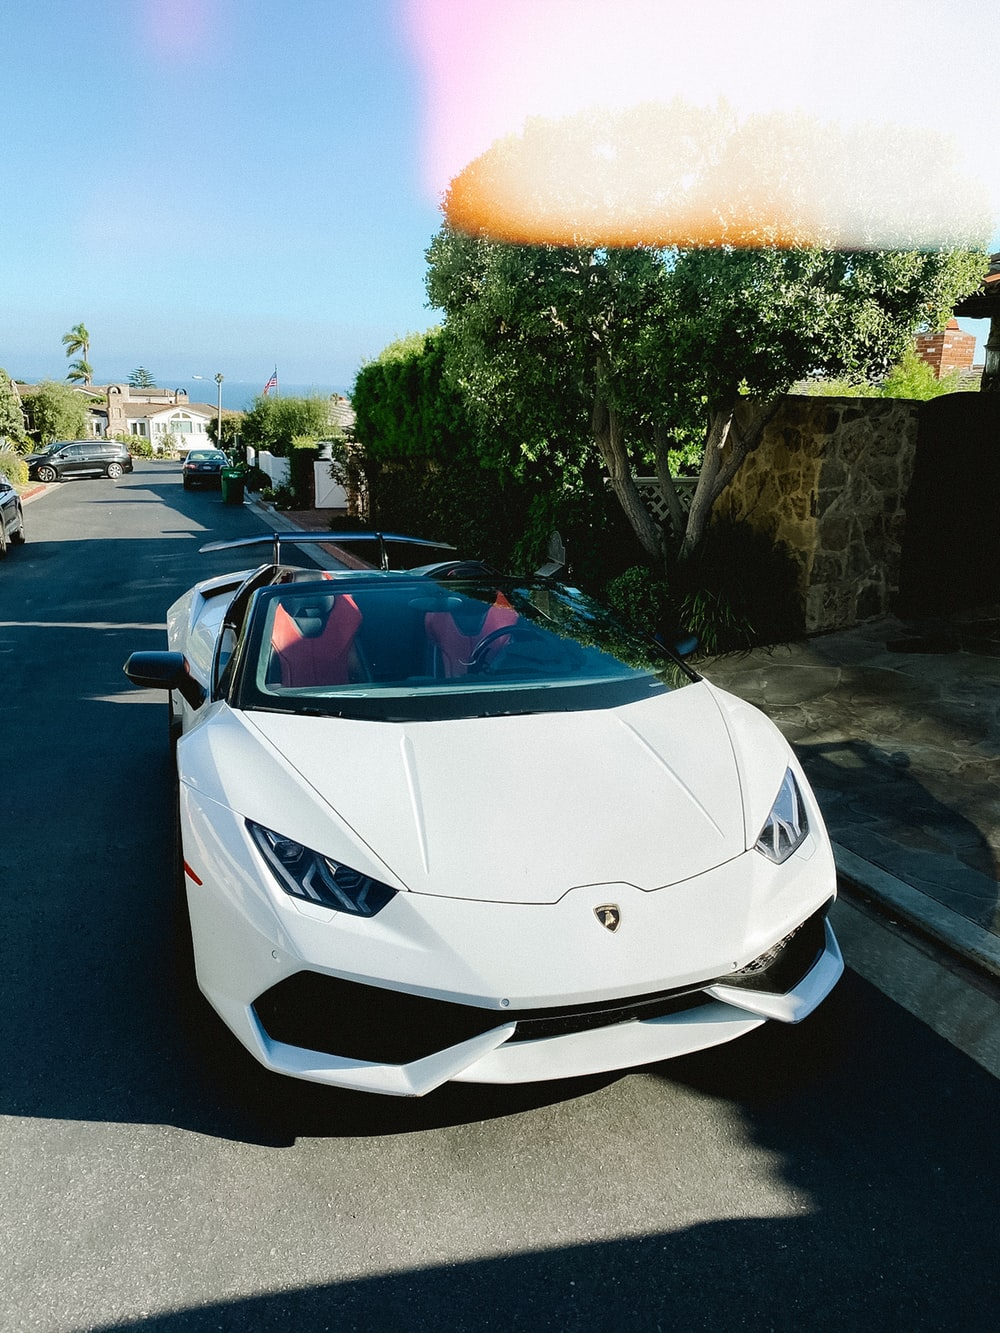 white lamborghini aventador parked on parking lot during daytime